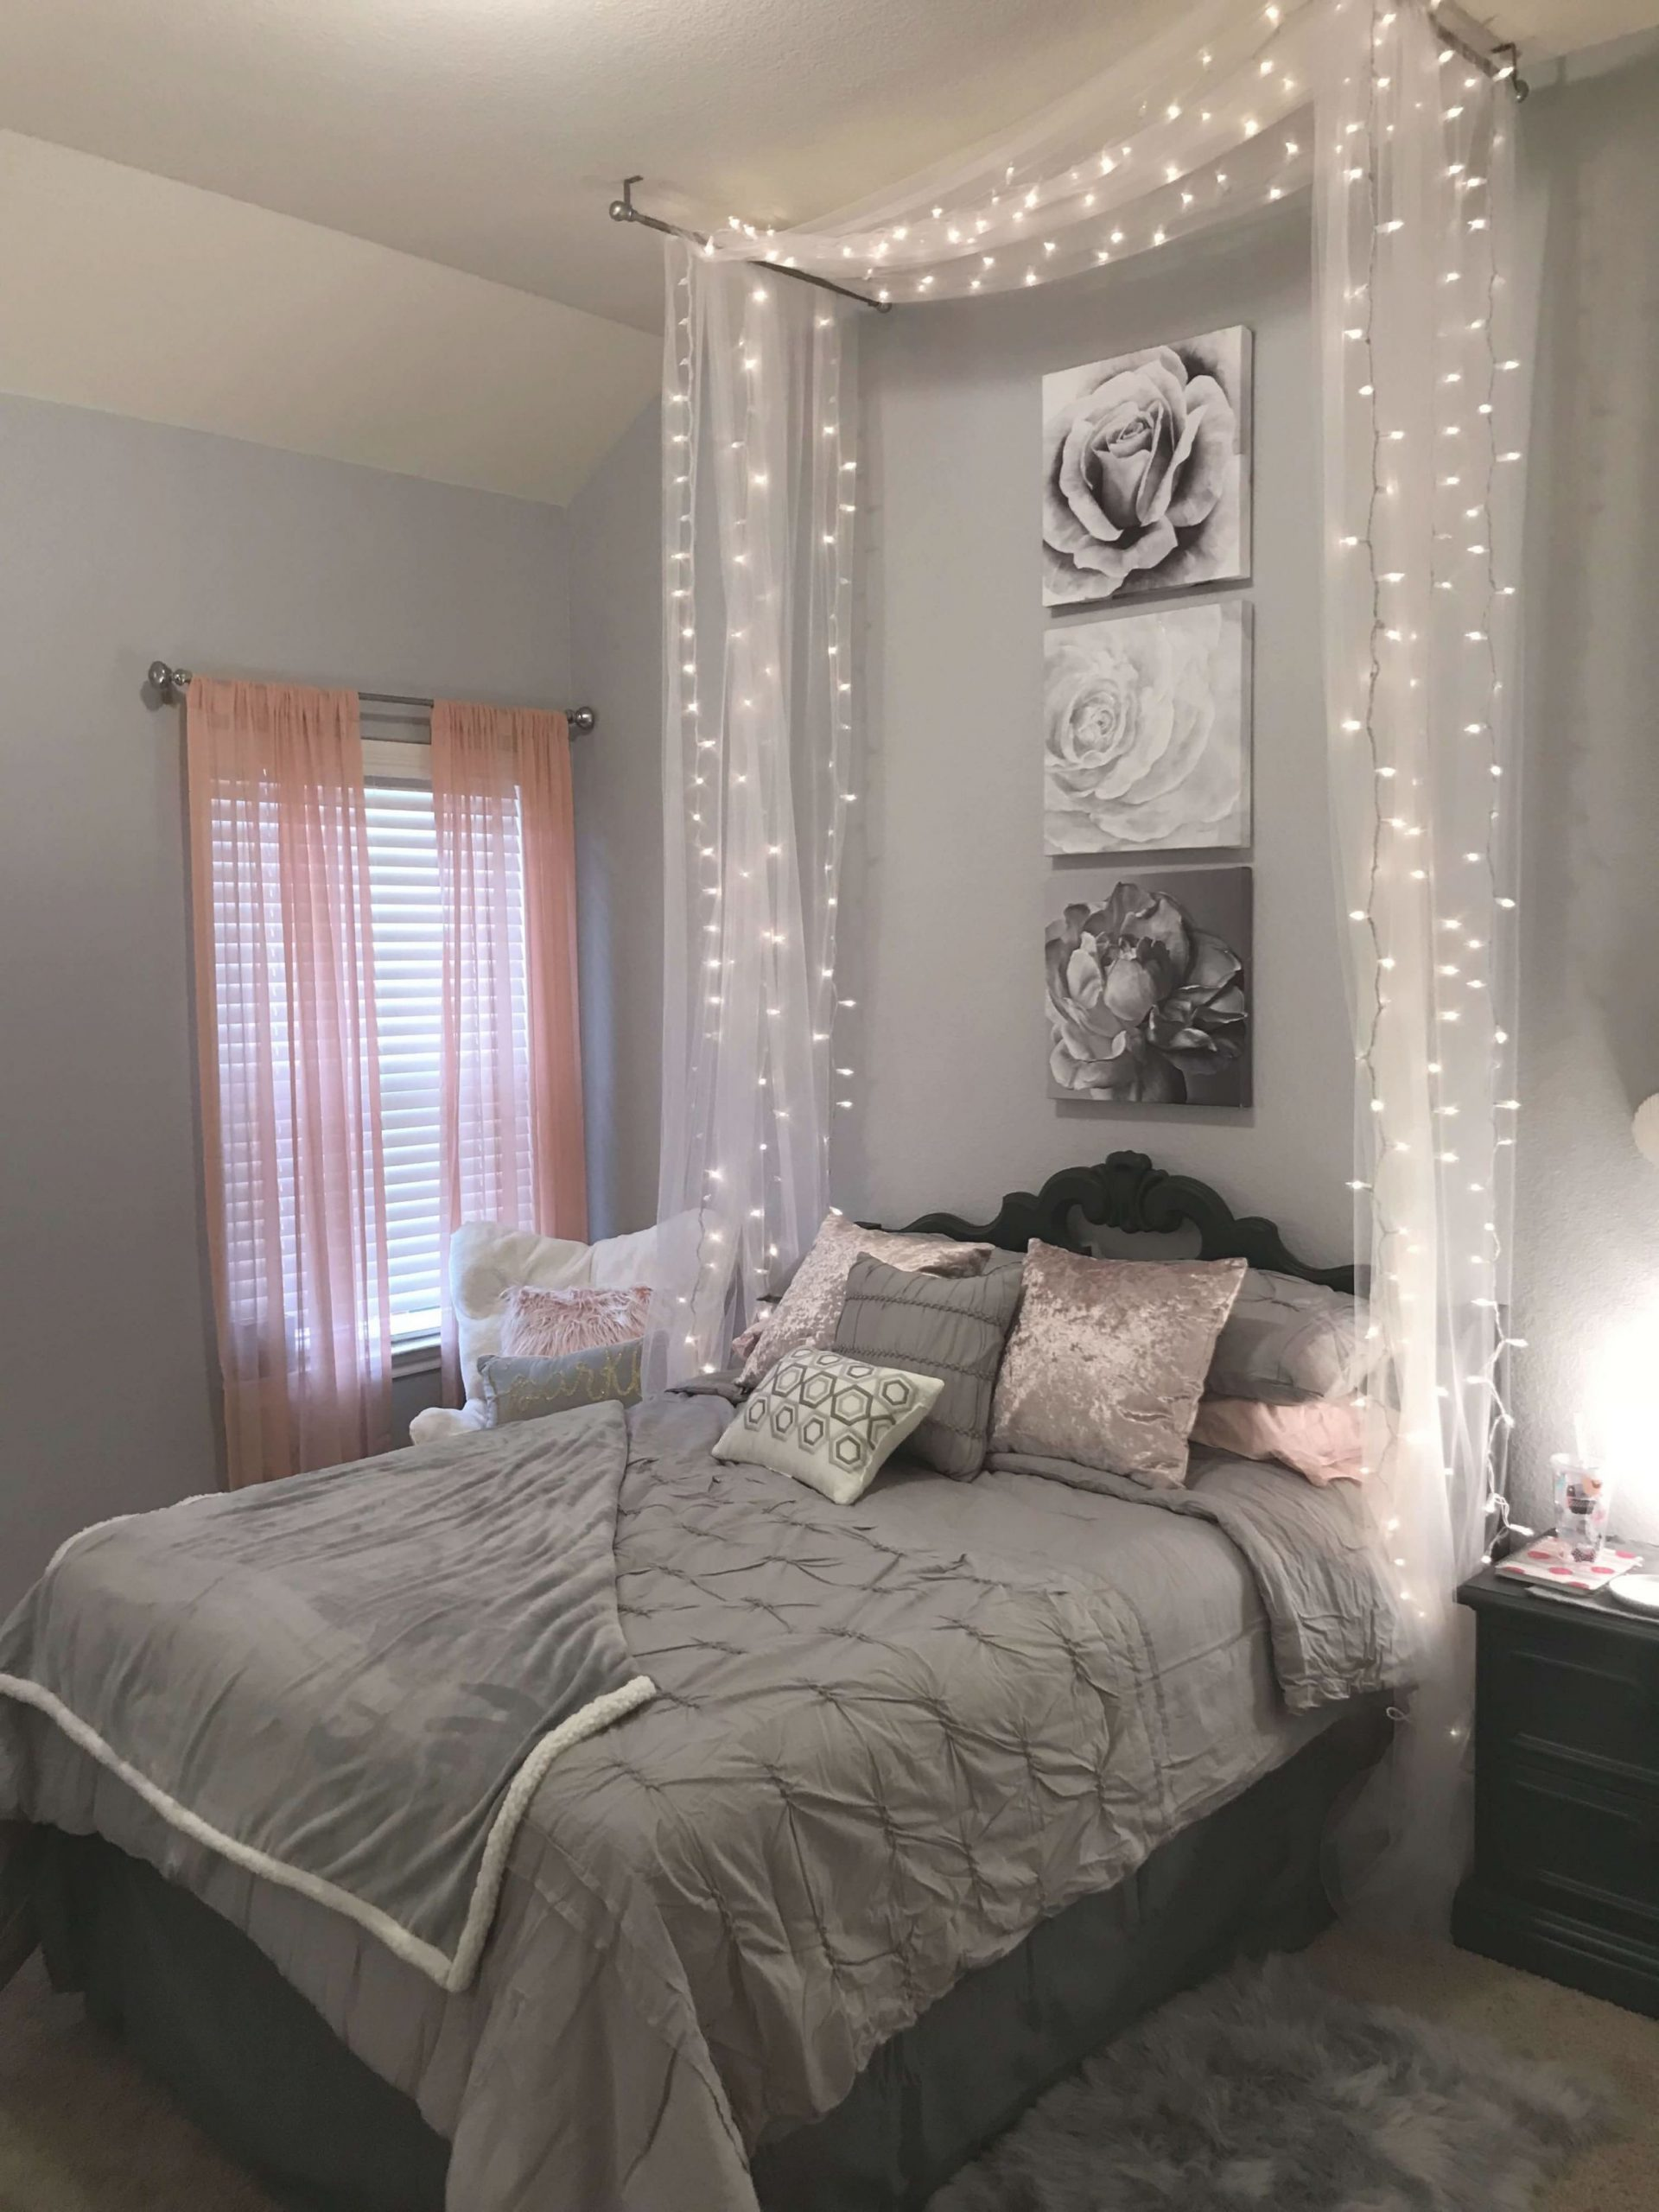 Some Of The Coolest Girly Teenage Bedroom Decor Ideas throughout Awesome Teen Bedroom Decorating Ideas